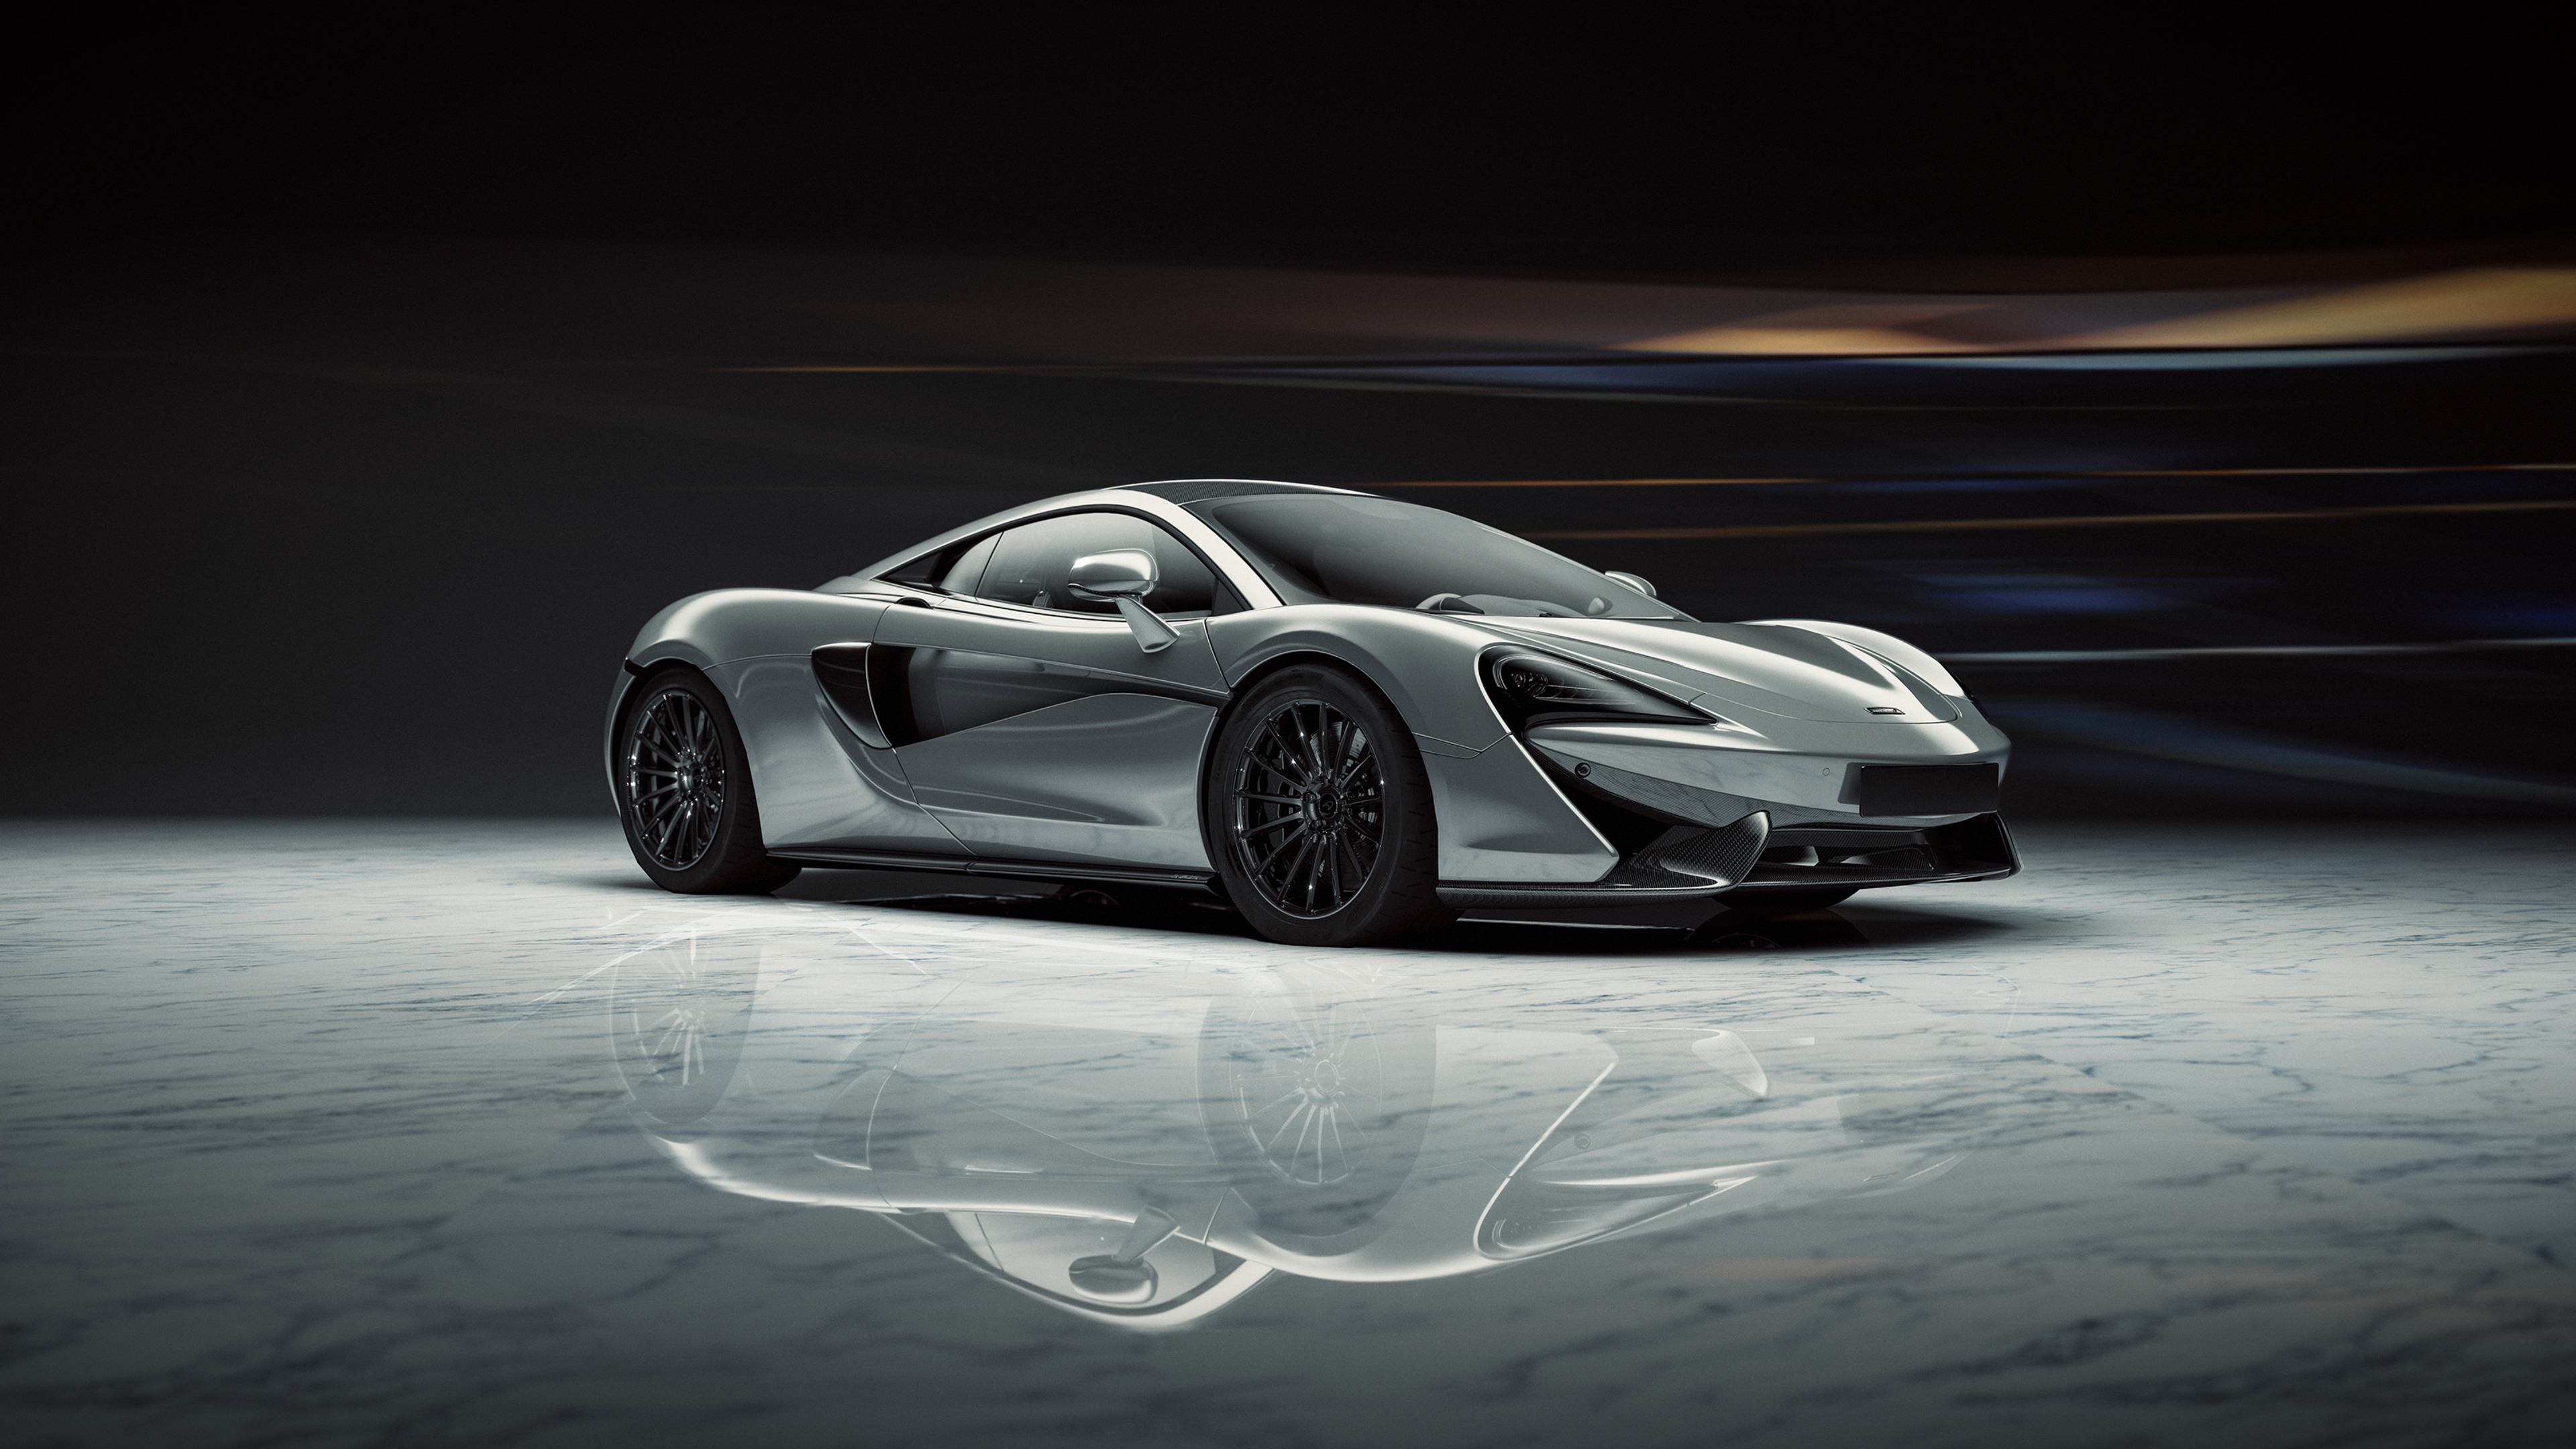 mclaren new 1569188215 - Mclaren New - mclaren wallpapers, hd-wallpapers, cars wallpapers, 4k-wallpapers